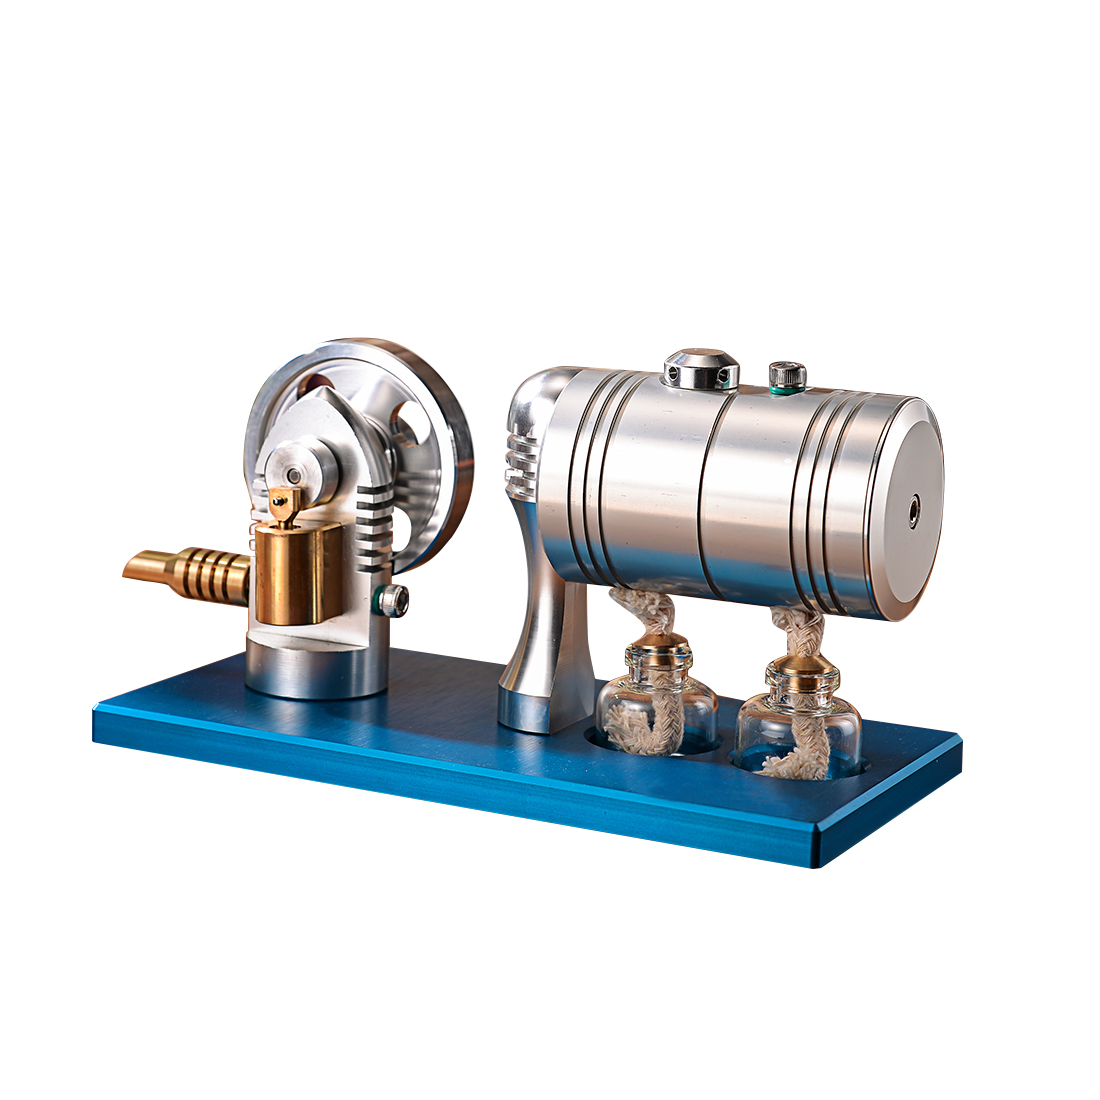 Metal Bootable Steam Engine Model Retro Stirling Engine Model with Heating Boiler Alcohol Burner